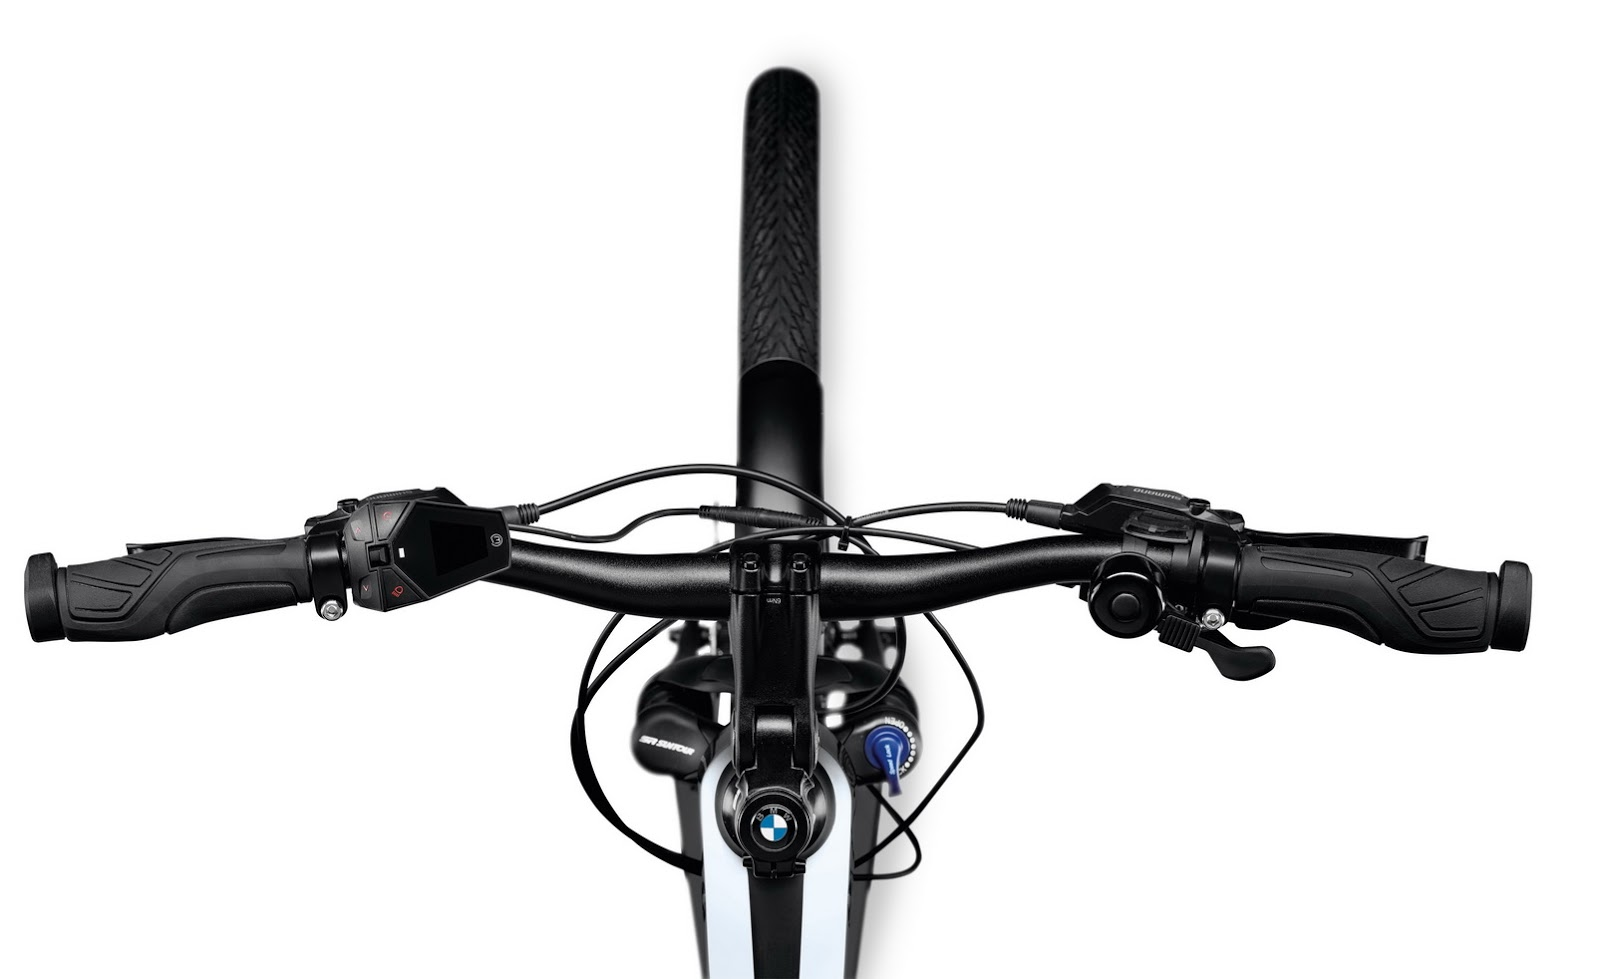 BMW_Active_Hybrid_e-bike_01